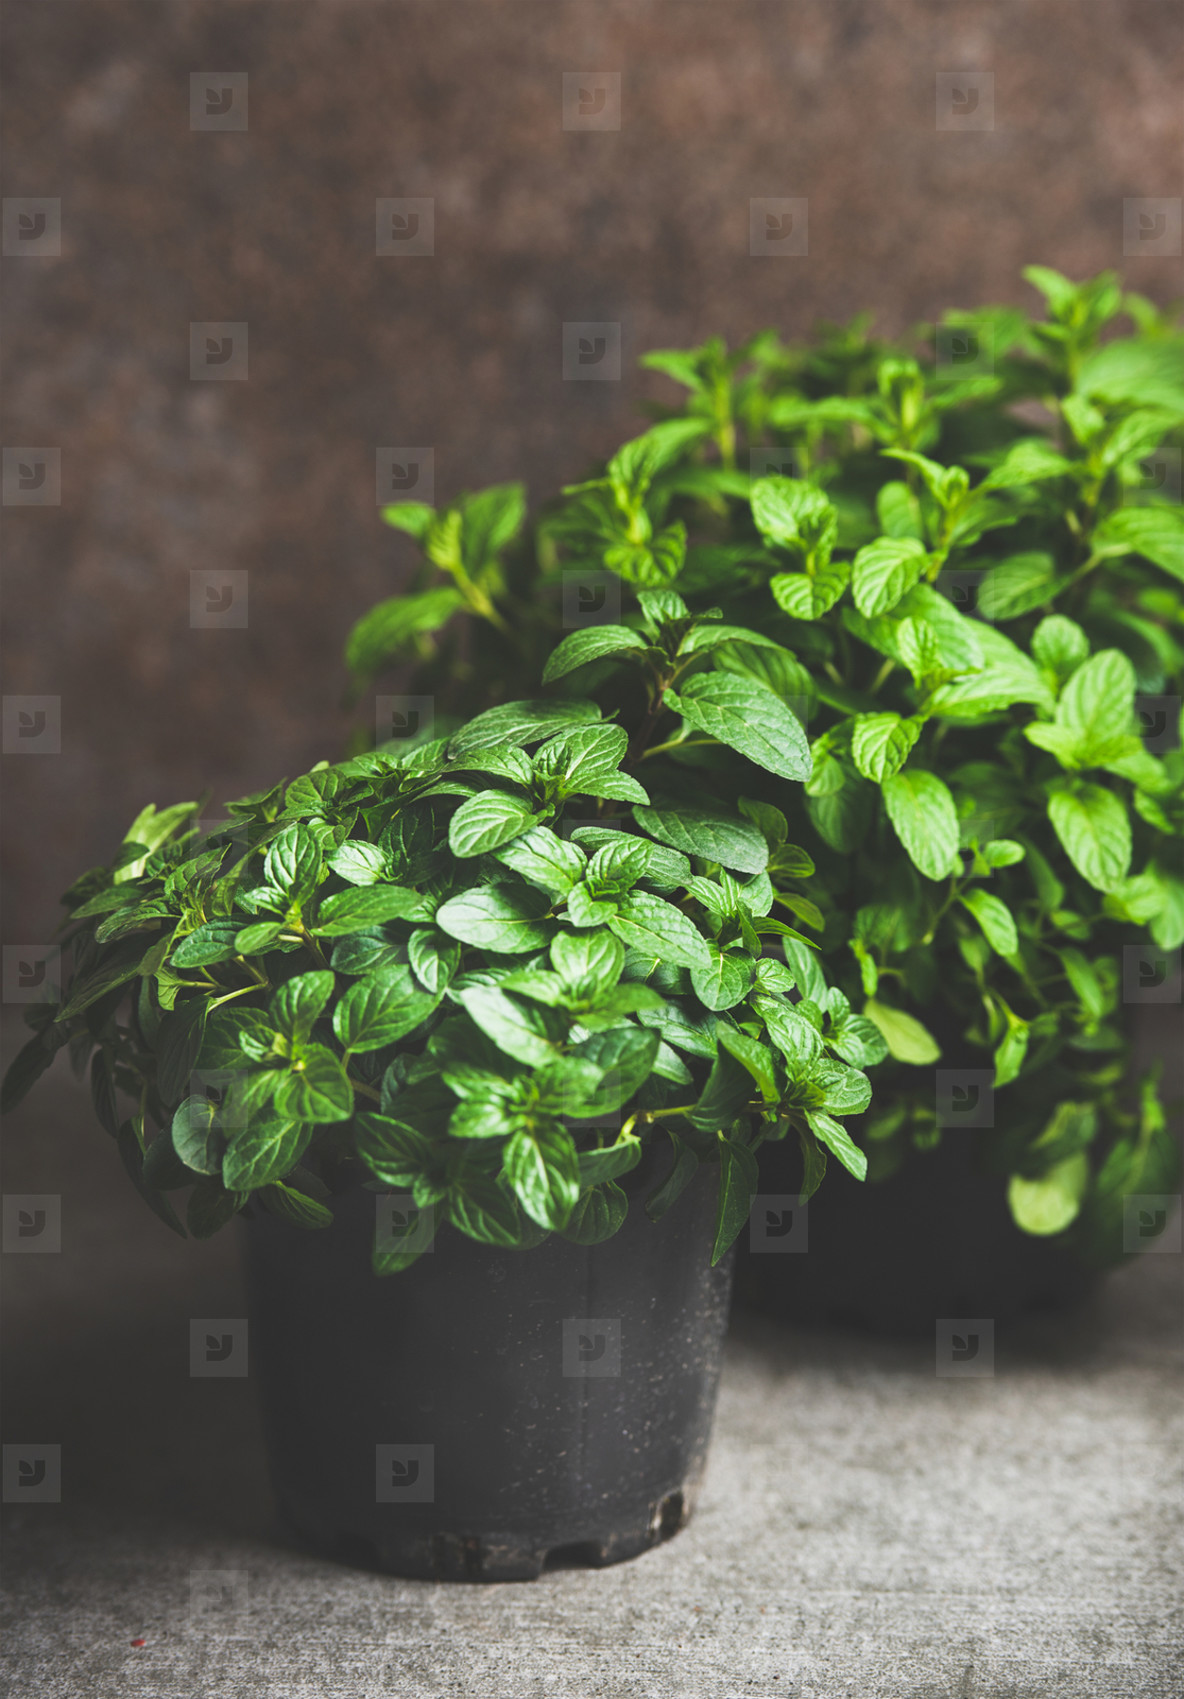 Fresh mint growing in pots over concrete table at home